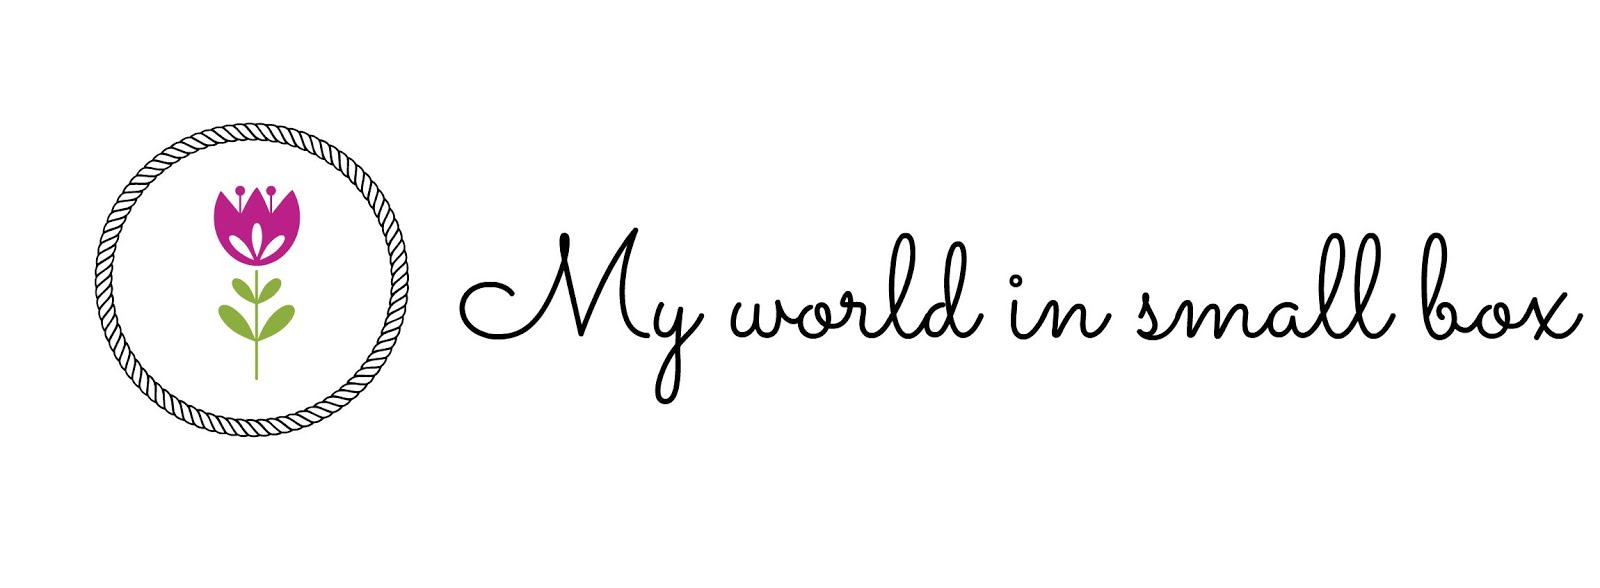 My world in small box: Travels